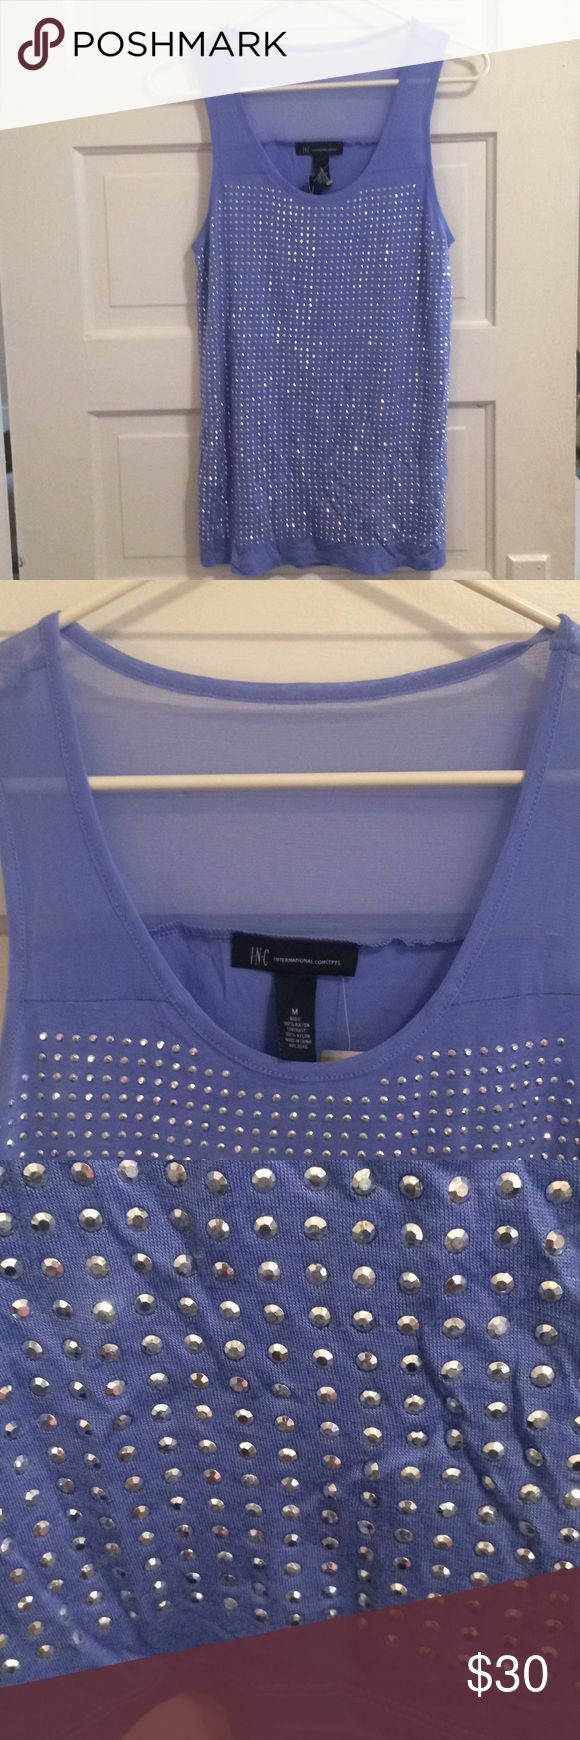 INC Bare Sleeve Soft Jersey Very sparkly festive Perry Winkle blue new with tags INC Tops